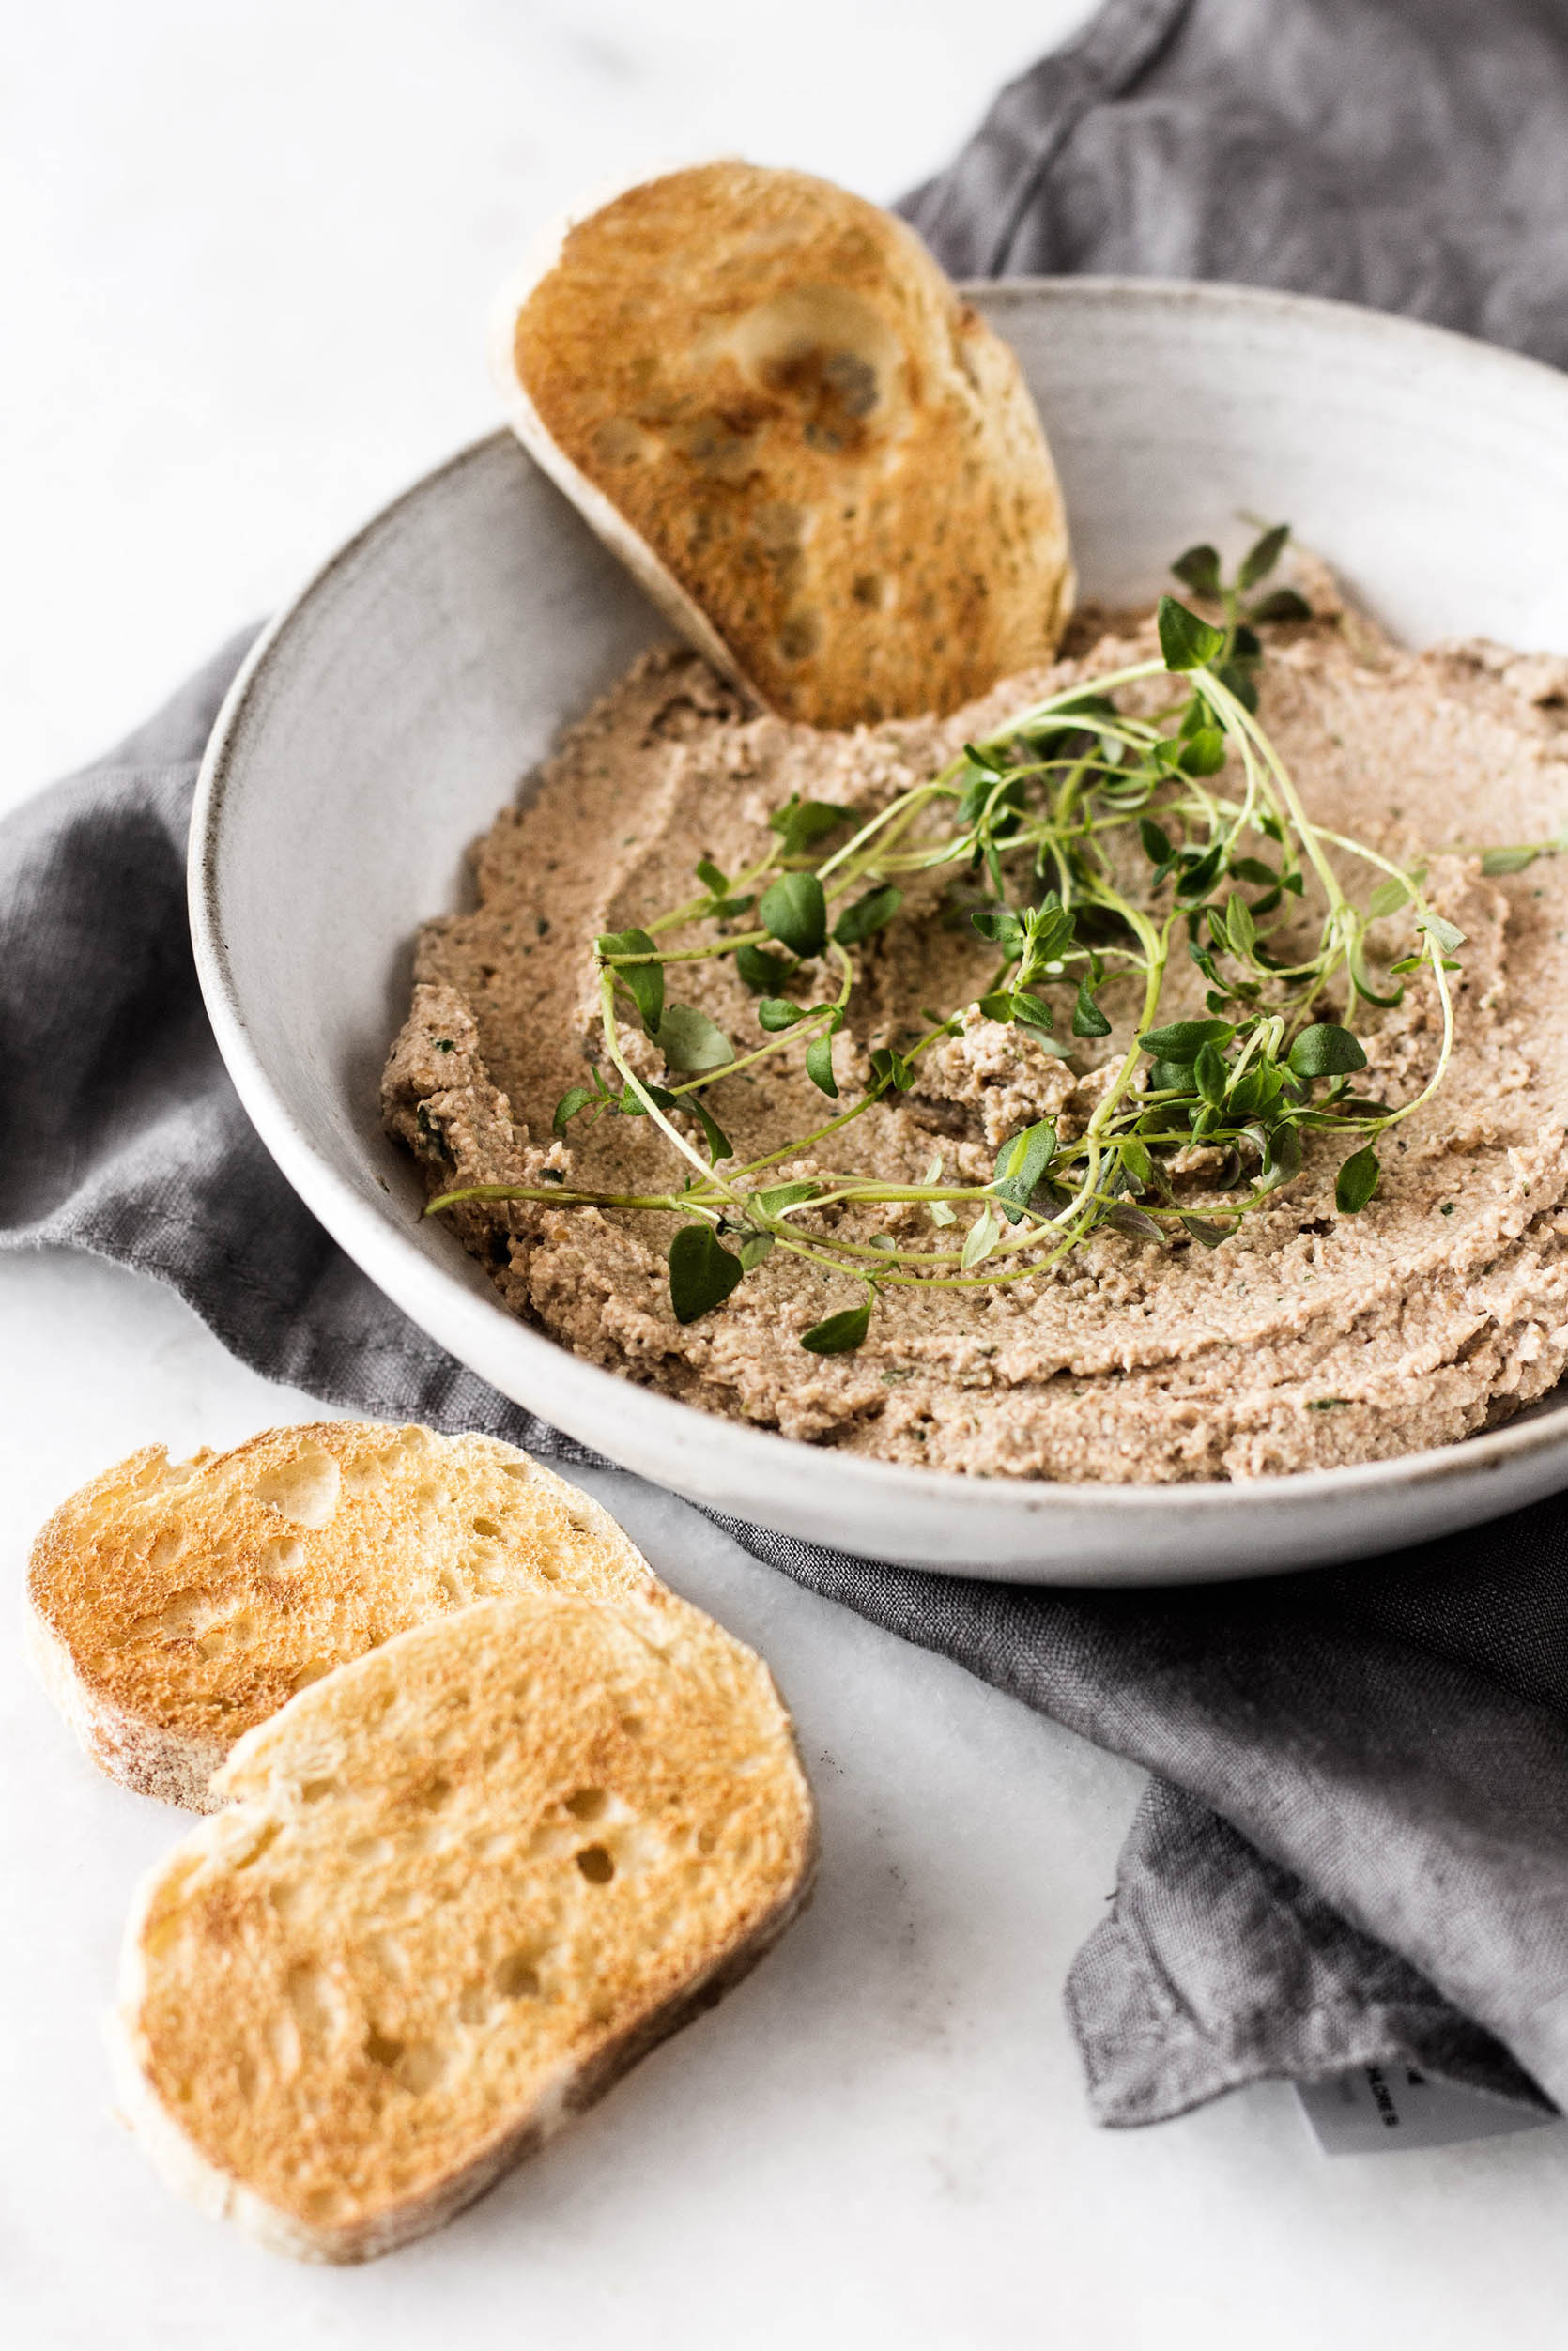 Walnut Lentil Pate | The Full Helping